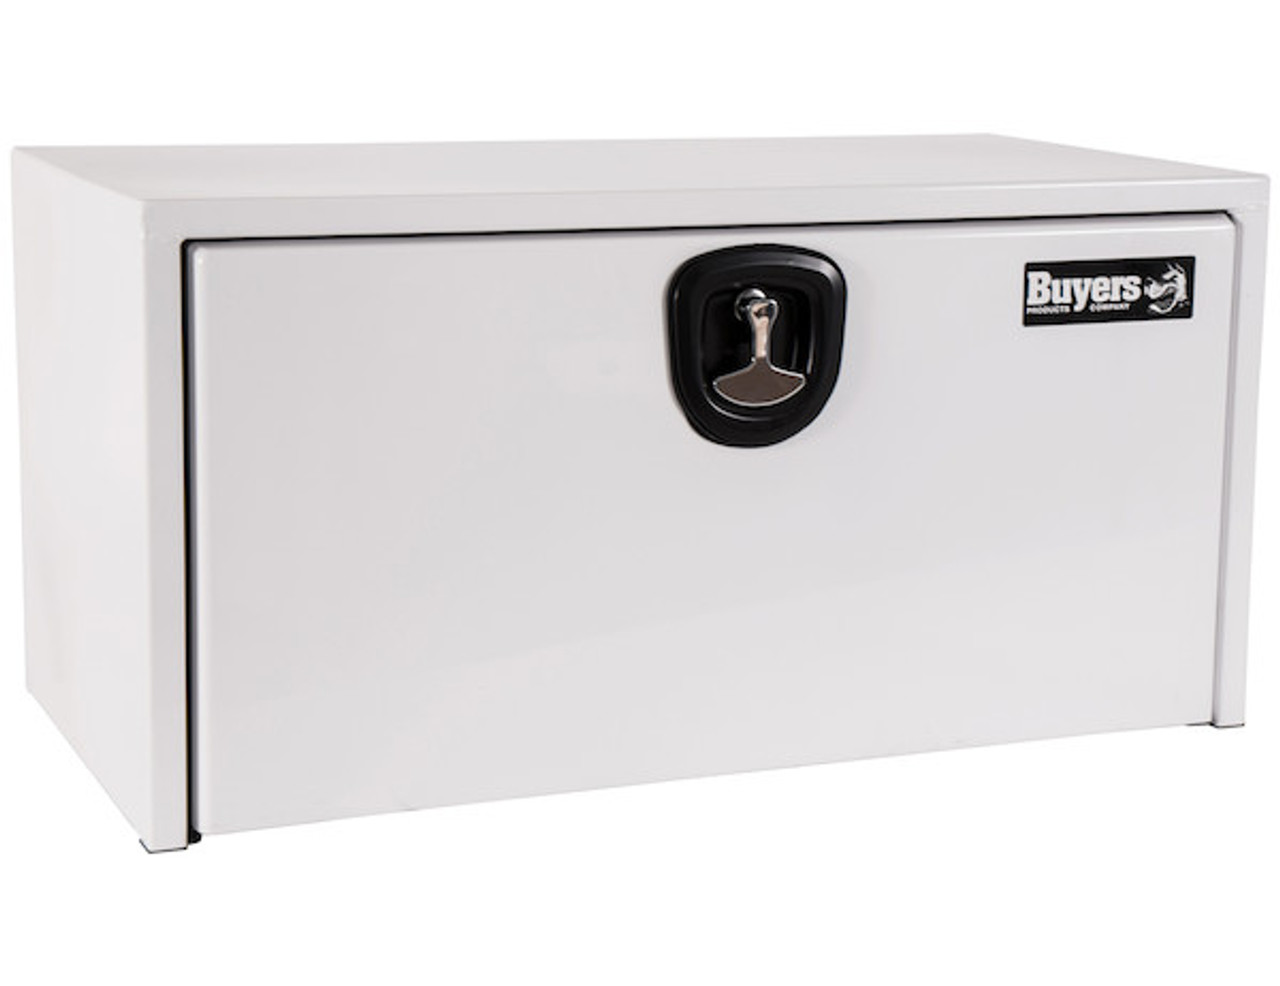 """1702406 BUYERS PRODUCTS WHITE STEEL UNDERBODY TRUCK TOOLBOX WITH 3-POINT LATCH 18""""Hx18""""Dx30""""W Picture #1"""